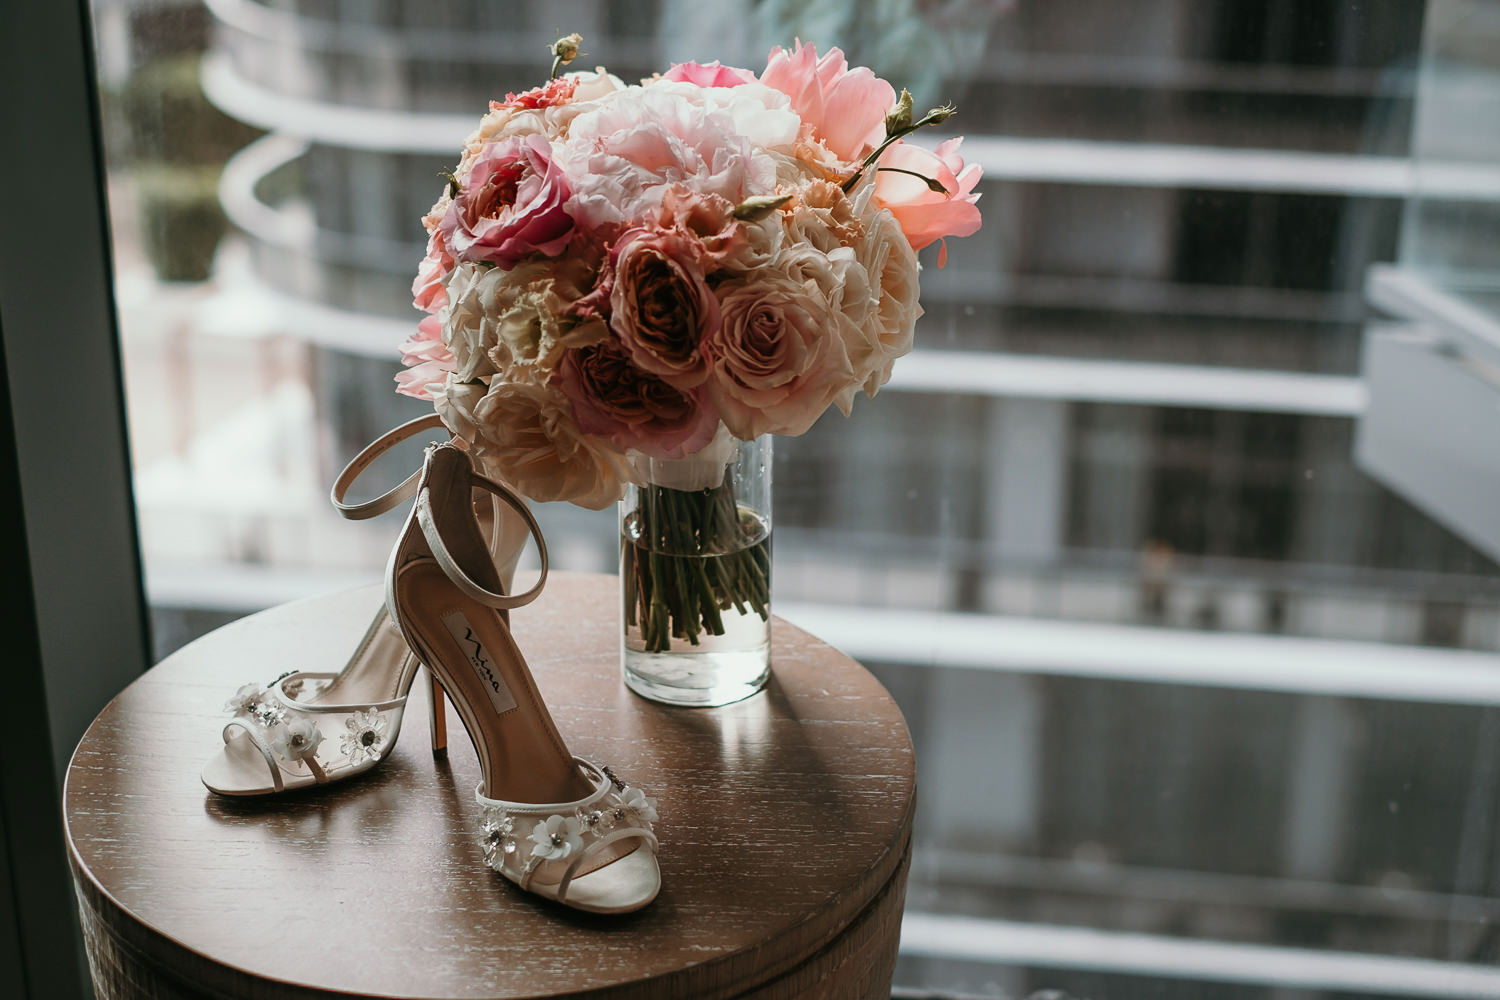 wedding shoes and flowers on small wooden table balcony view